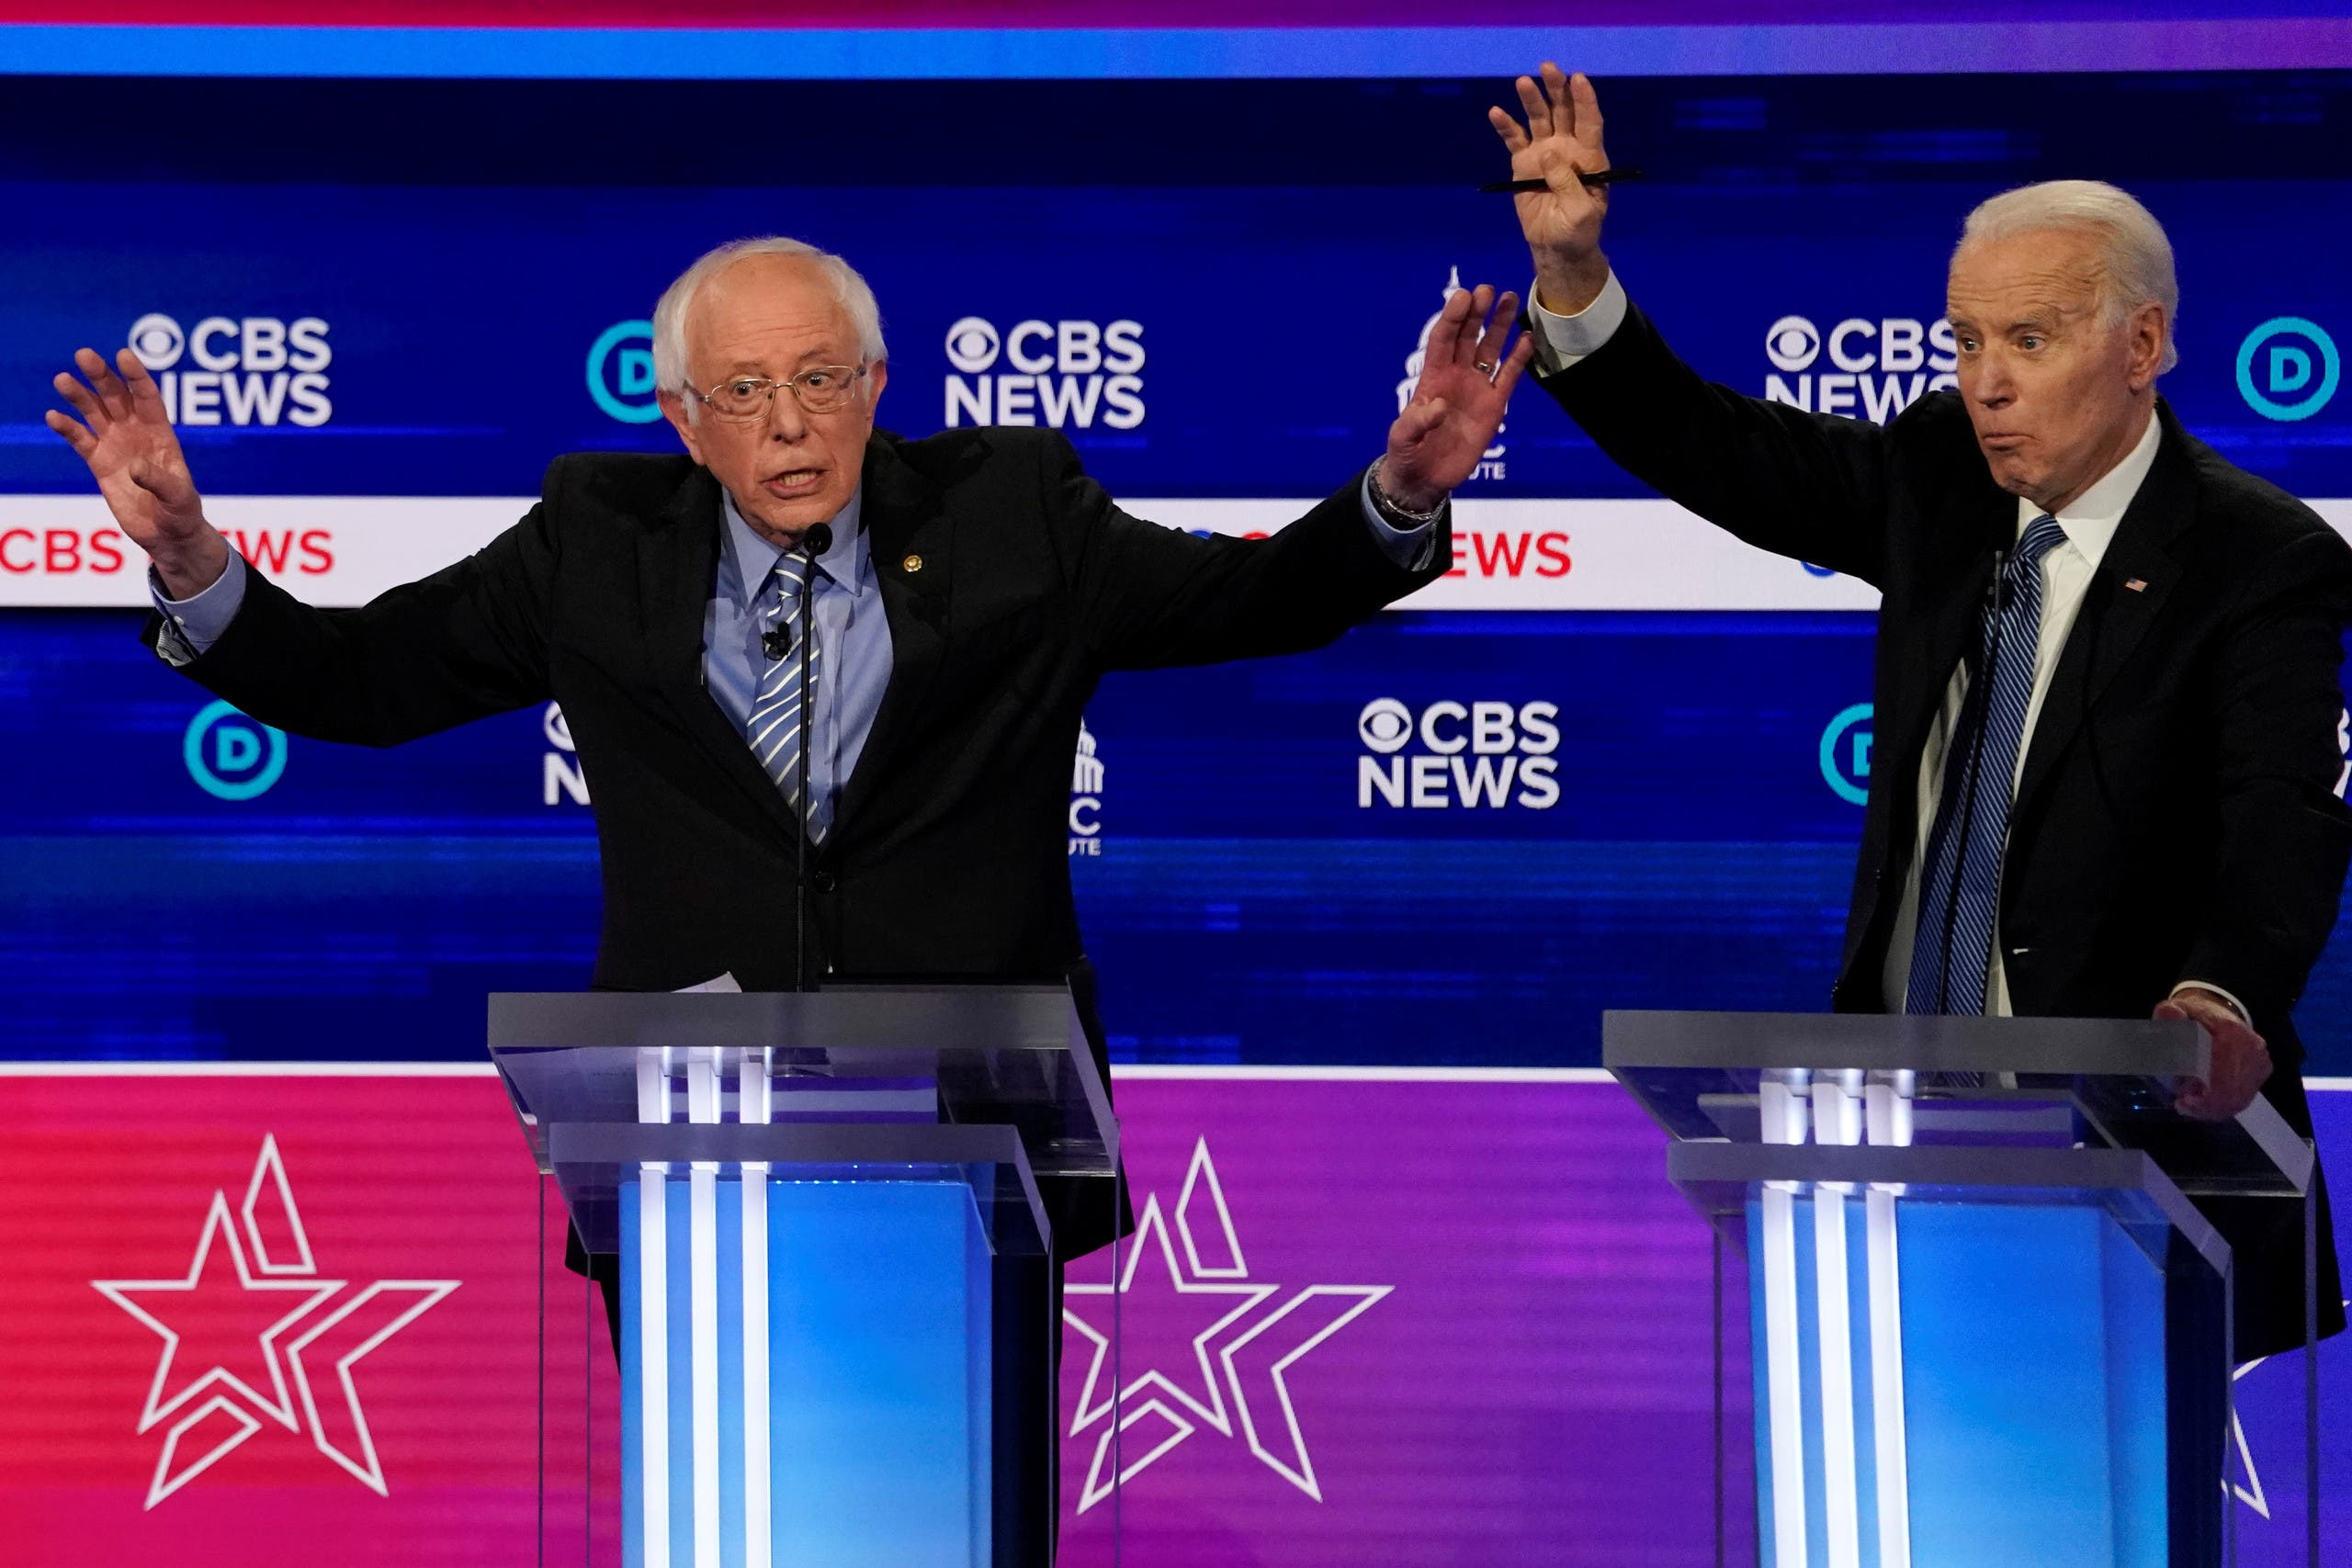 Democratic 2020 US presidential candidates Senator Bernie Sanders and former Vice President Joe Biden at the tenth Democratic 2020 presidential debate, South Carolina, US, February 25, 2020. (Reuters)